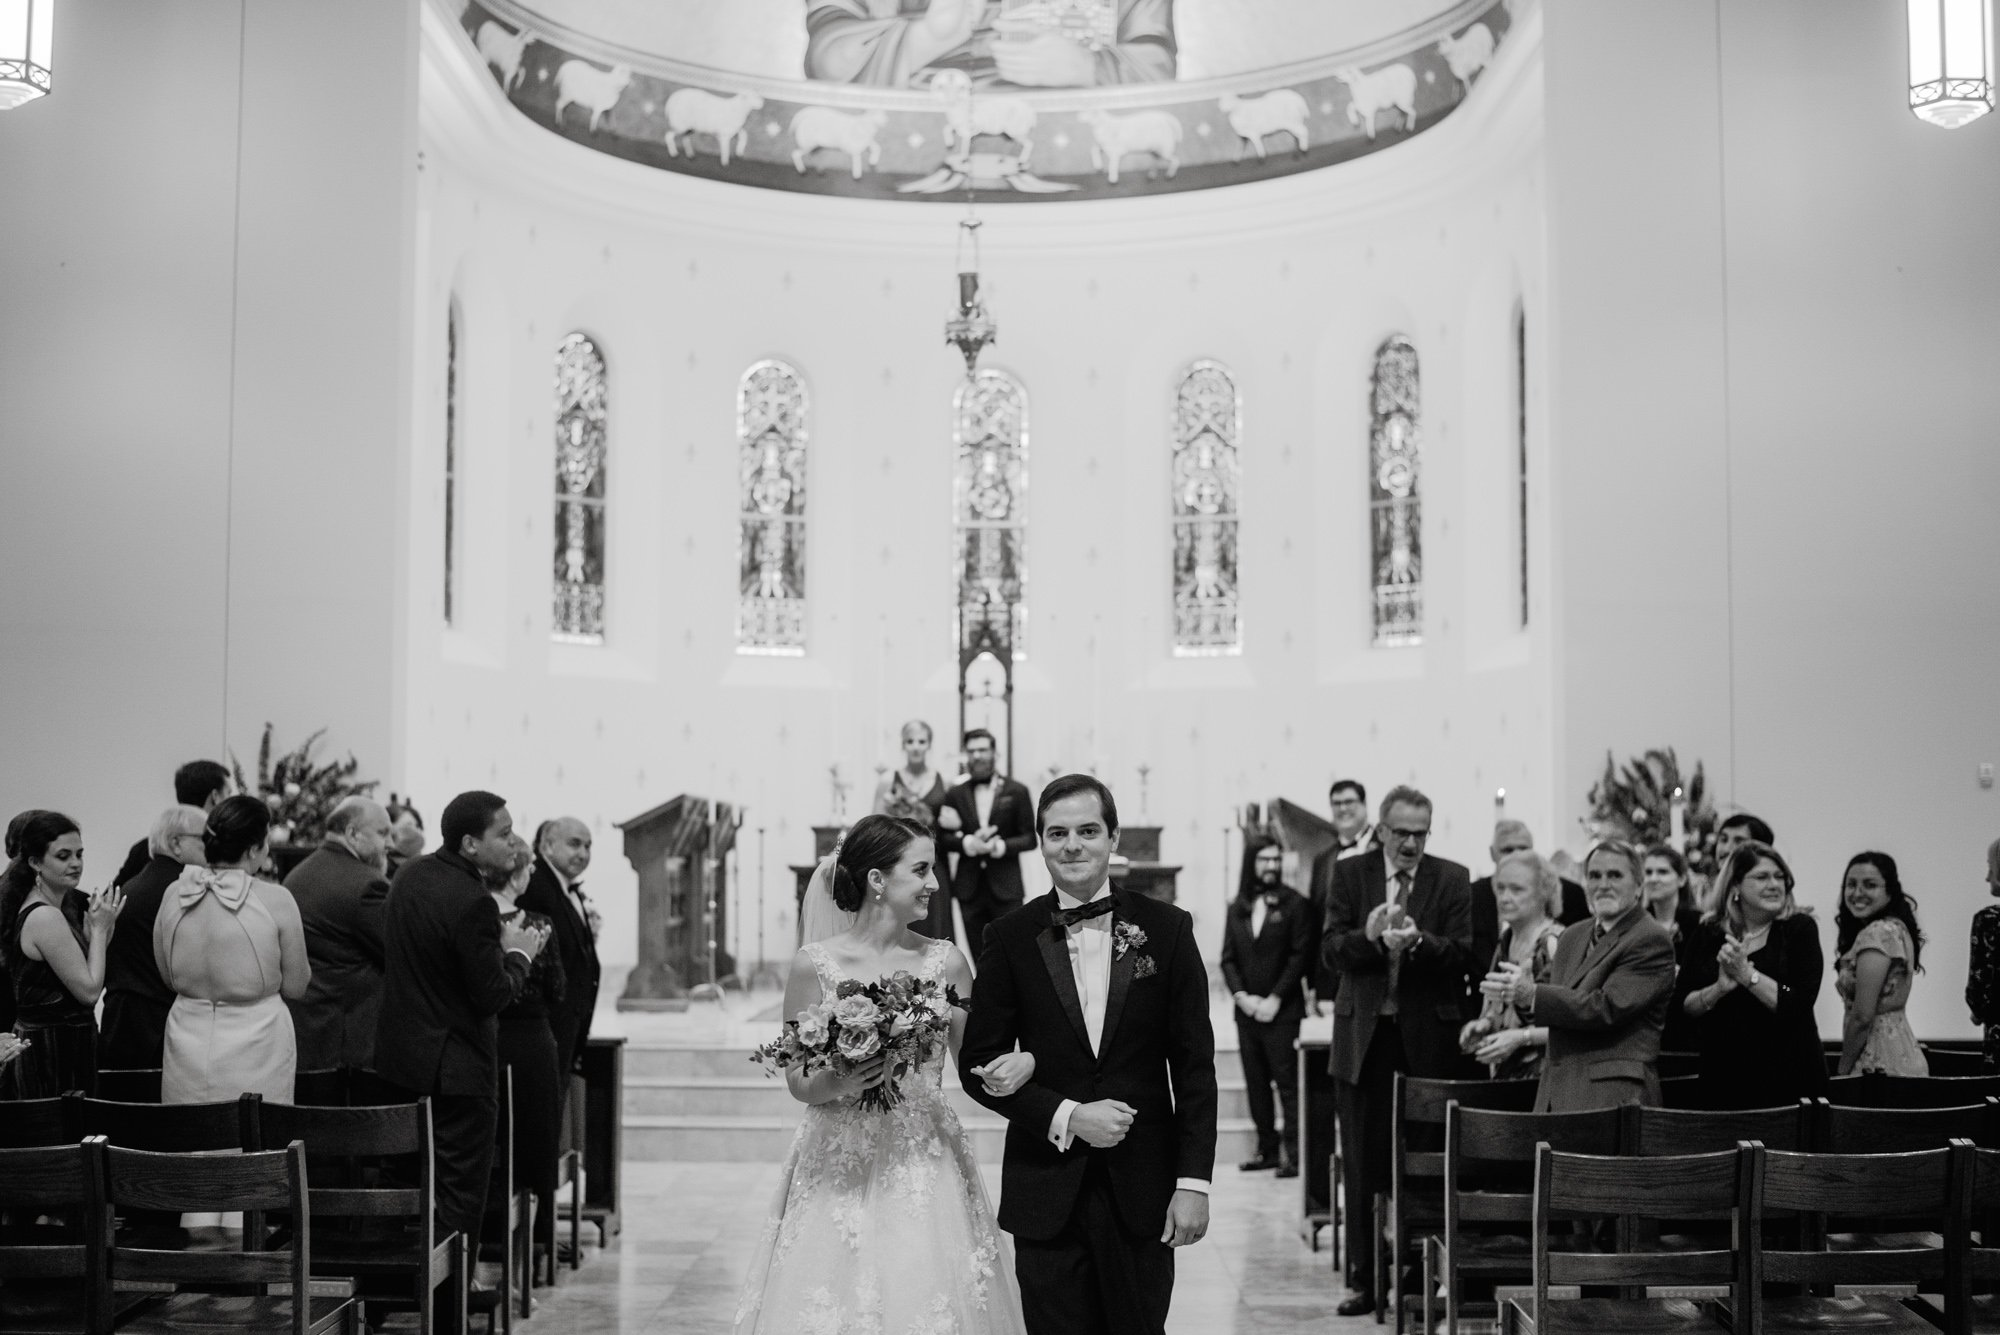 black and white wedding photos at st. louis king of france catholic church in austin